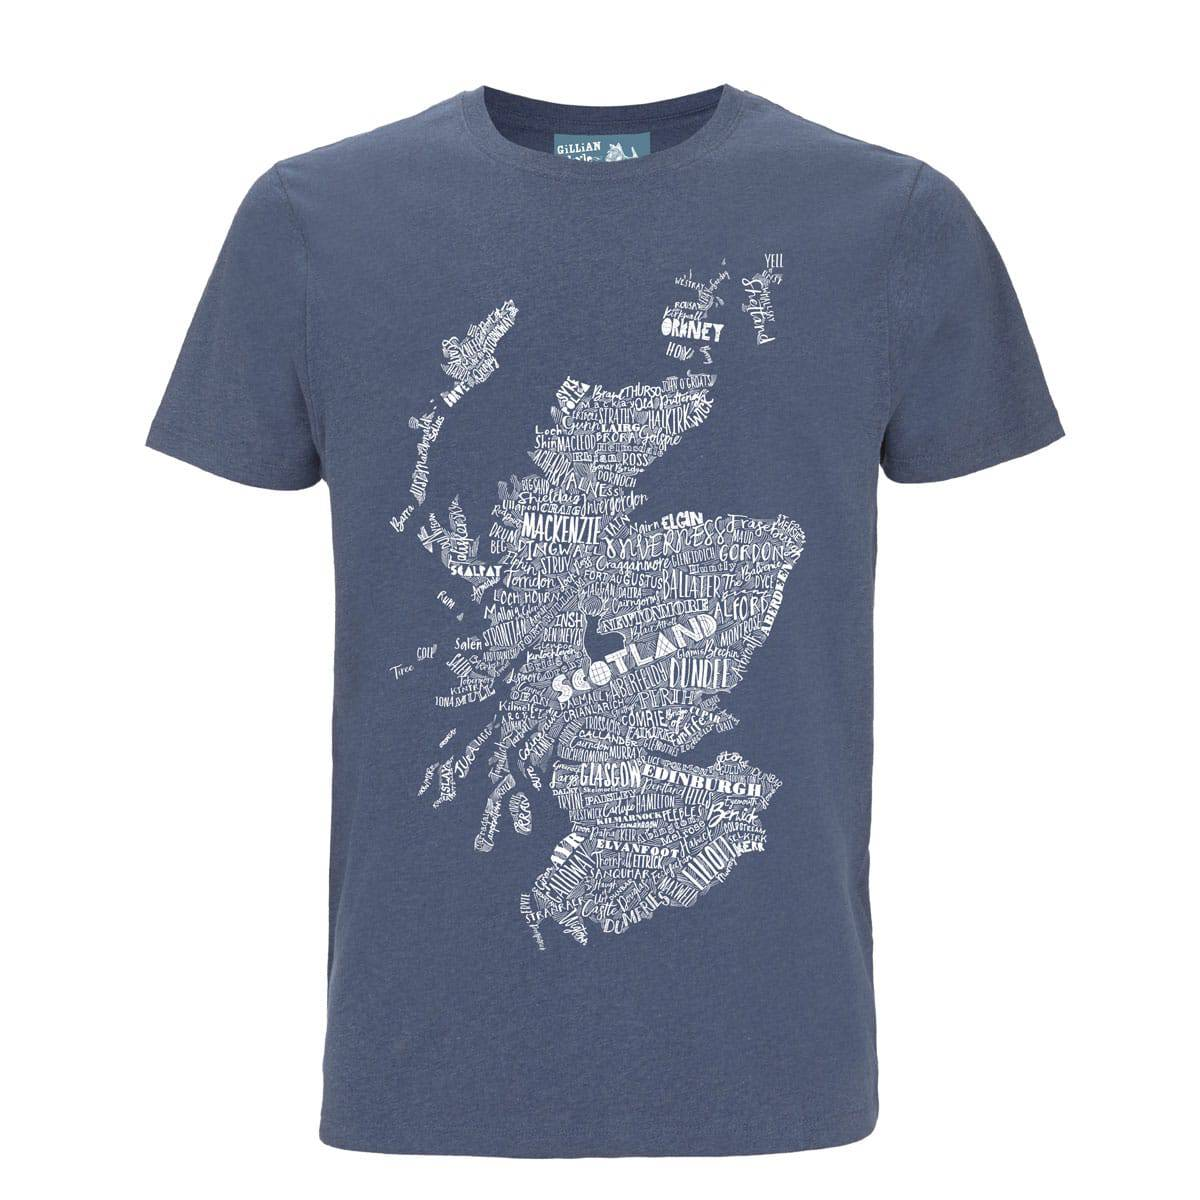 Gillian Kyle Scottish Clothing Scotland Map Mens Tee Shirt Blue